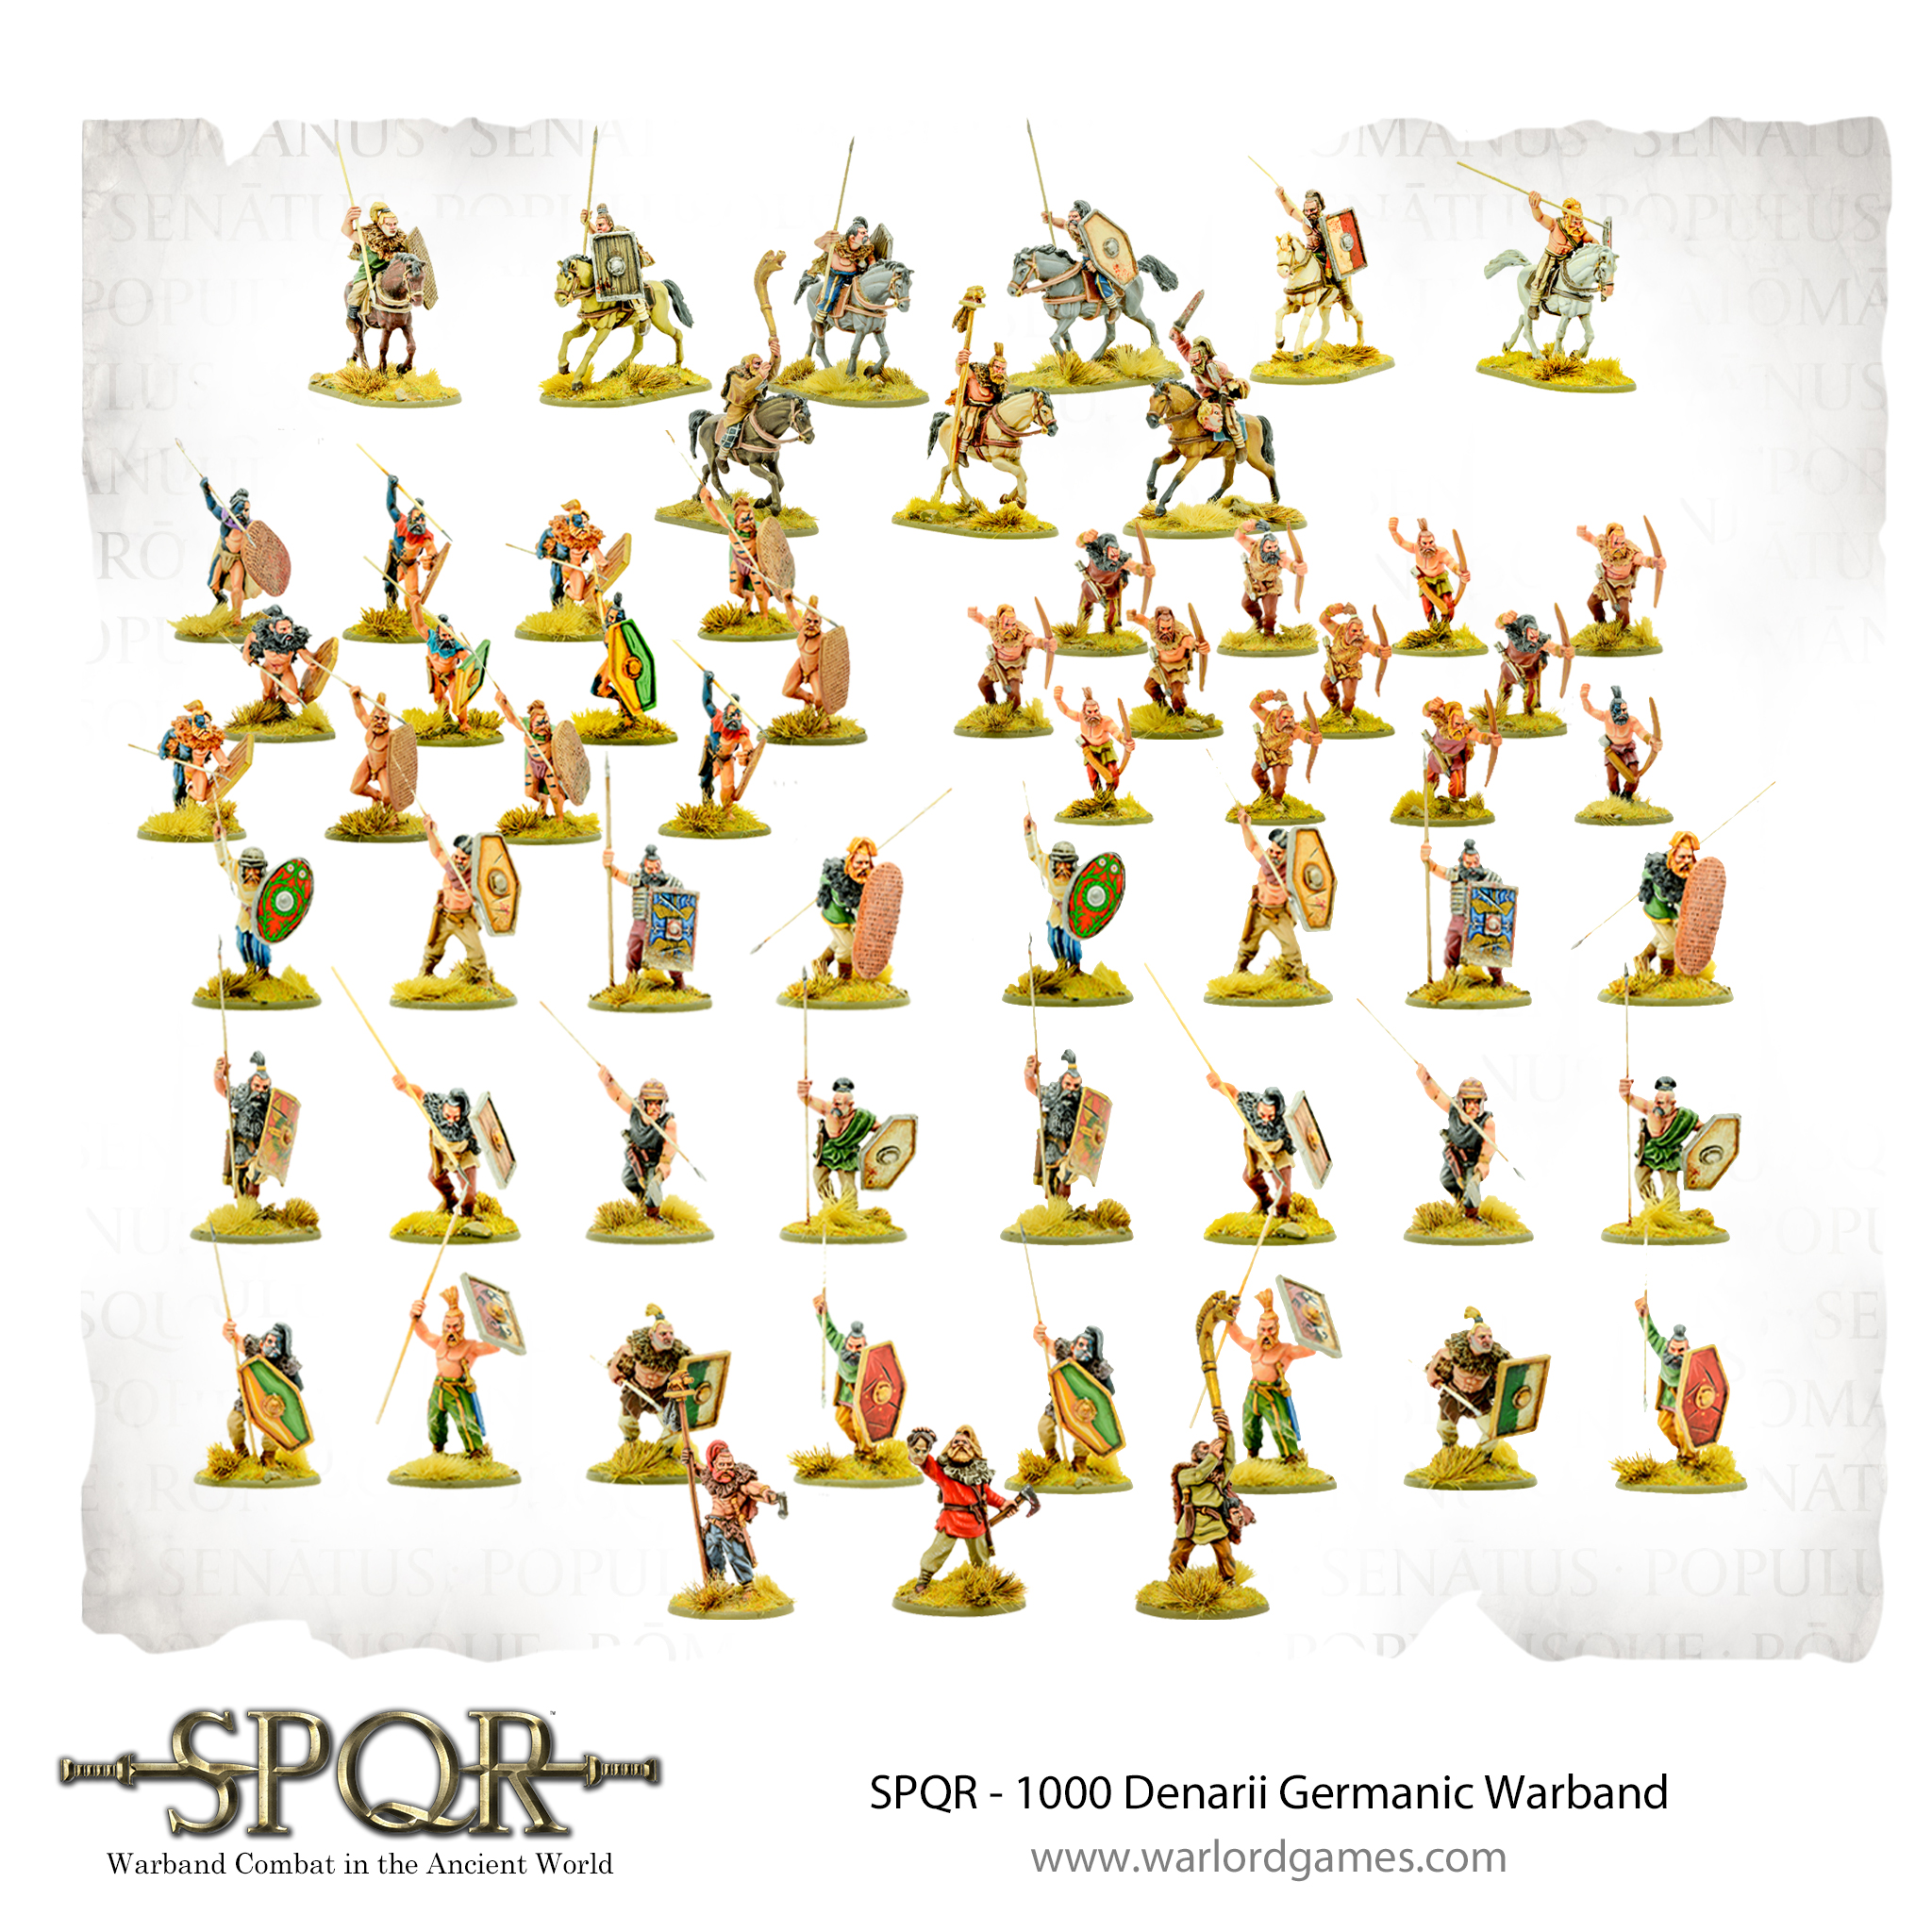 SPQR 1000 Denarii Germanic Warband